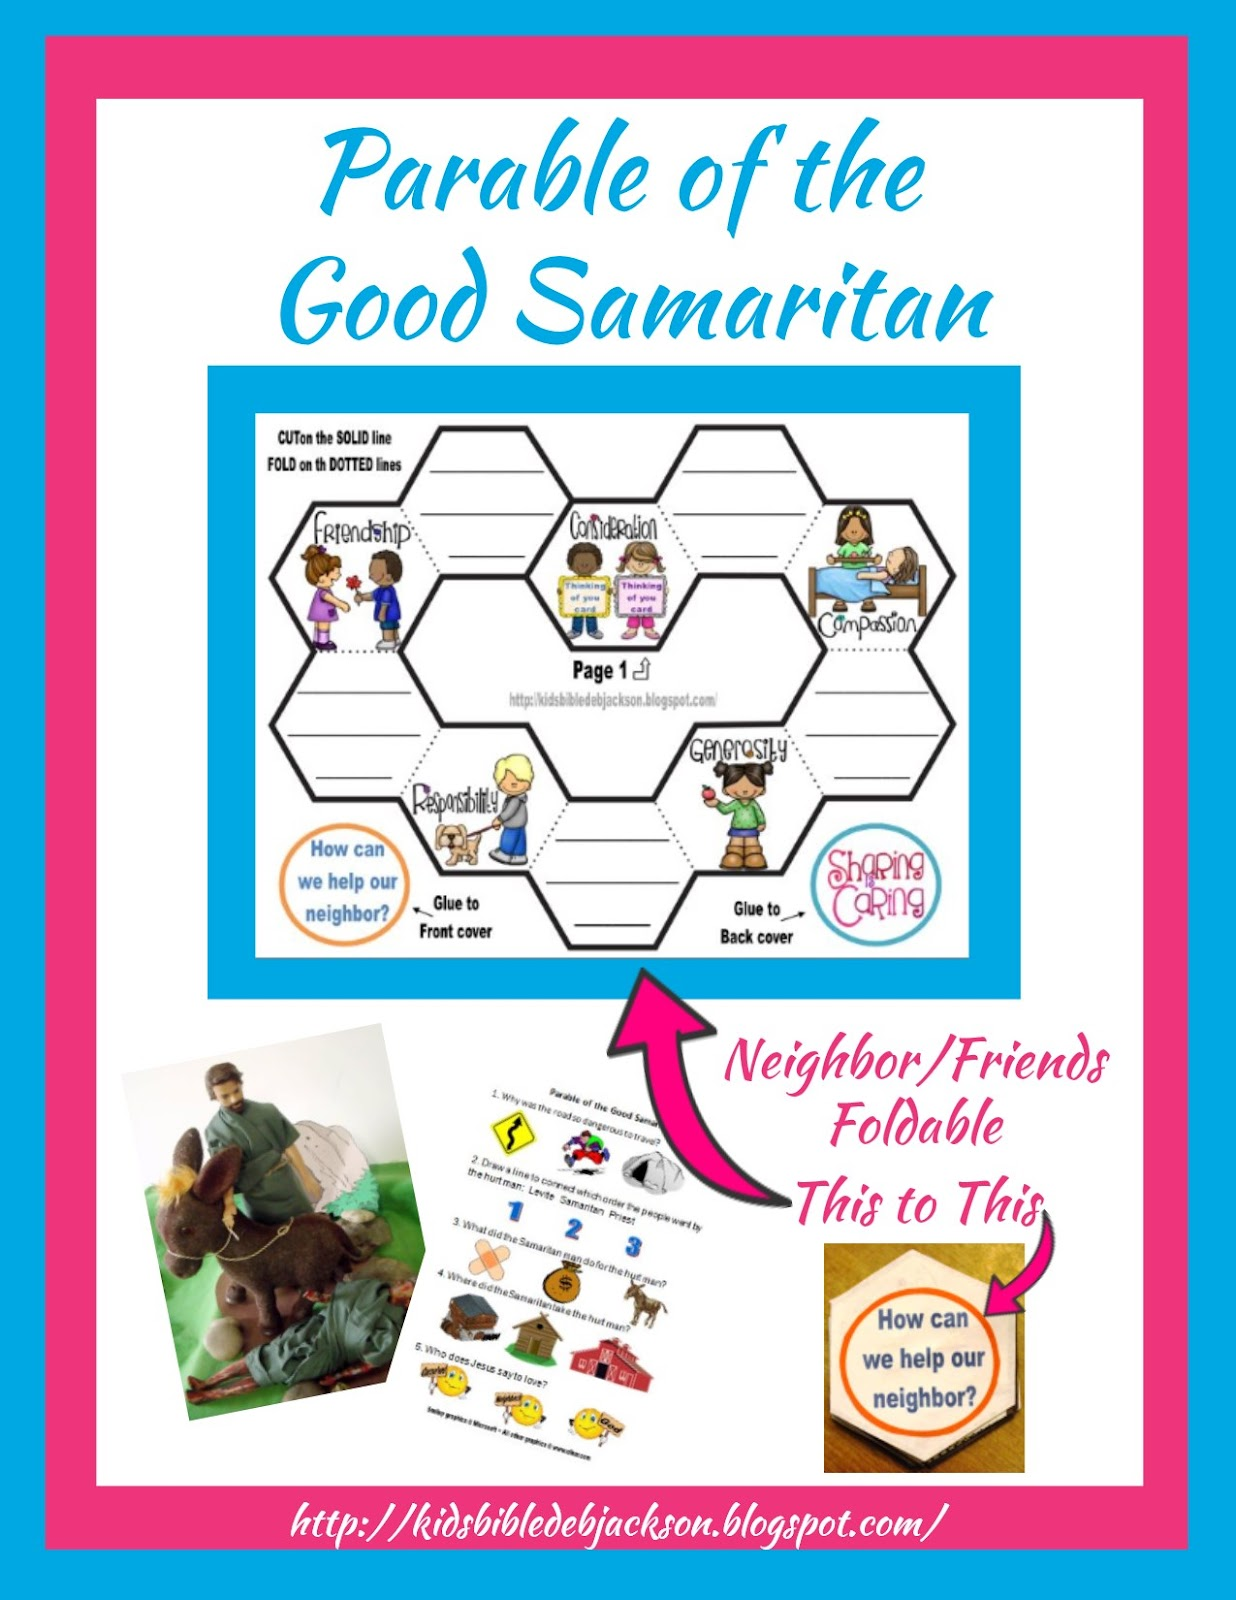 http://kidsbibledebjackson.blogspot.com/2014/10/parable-of-good-samaritan.html